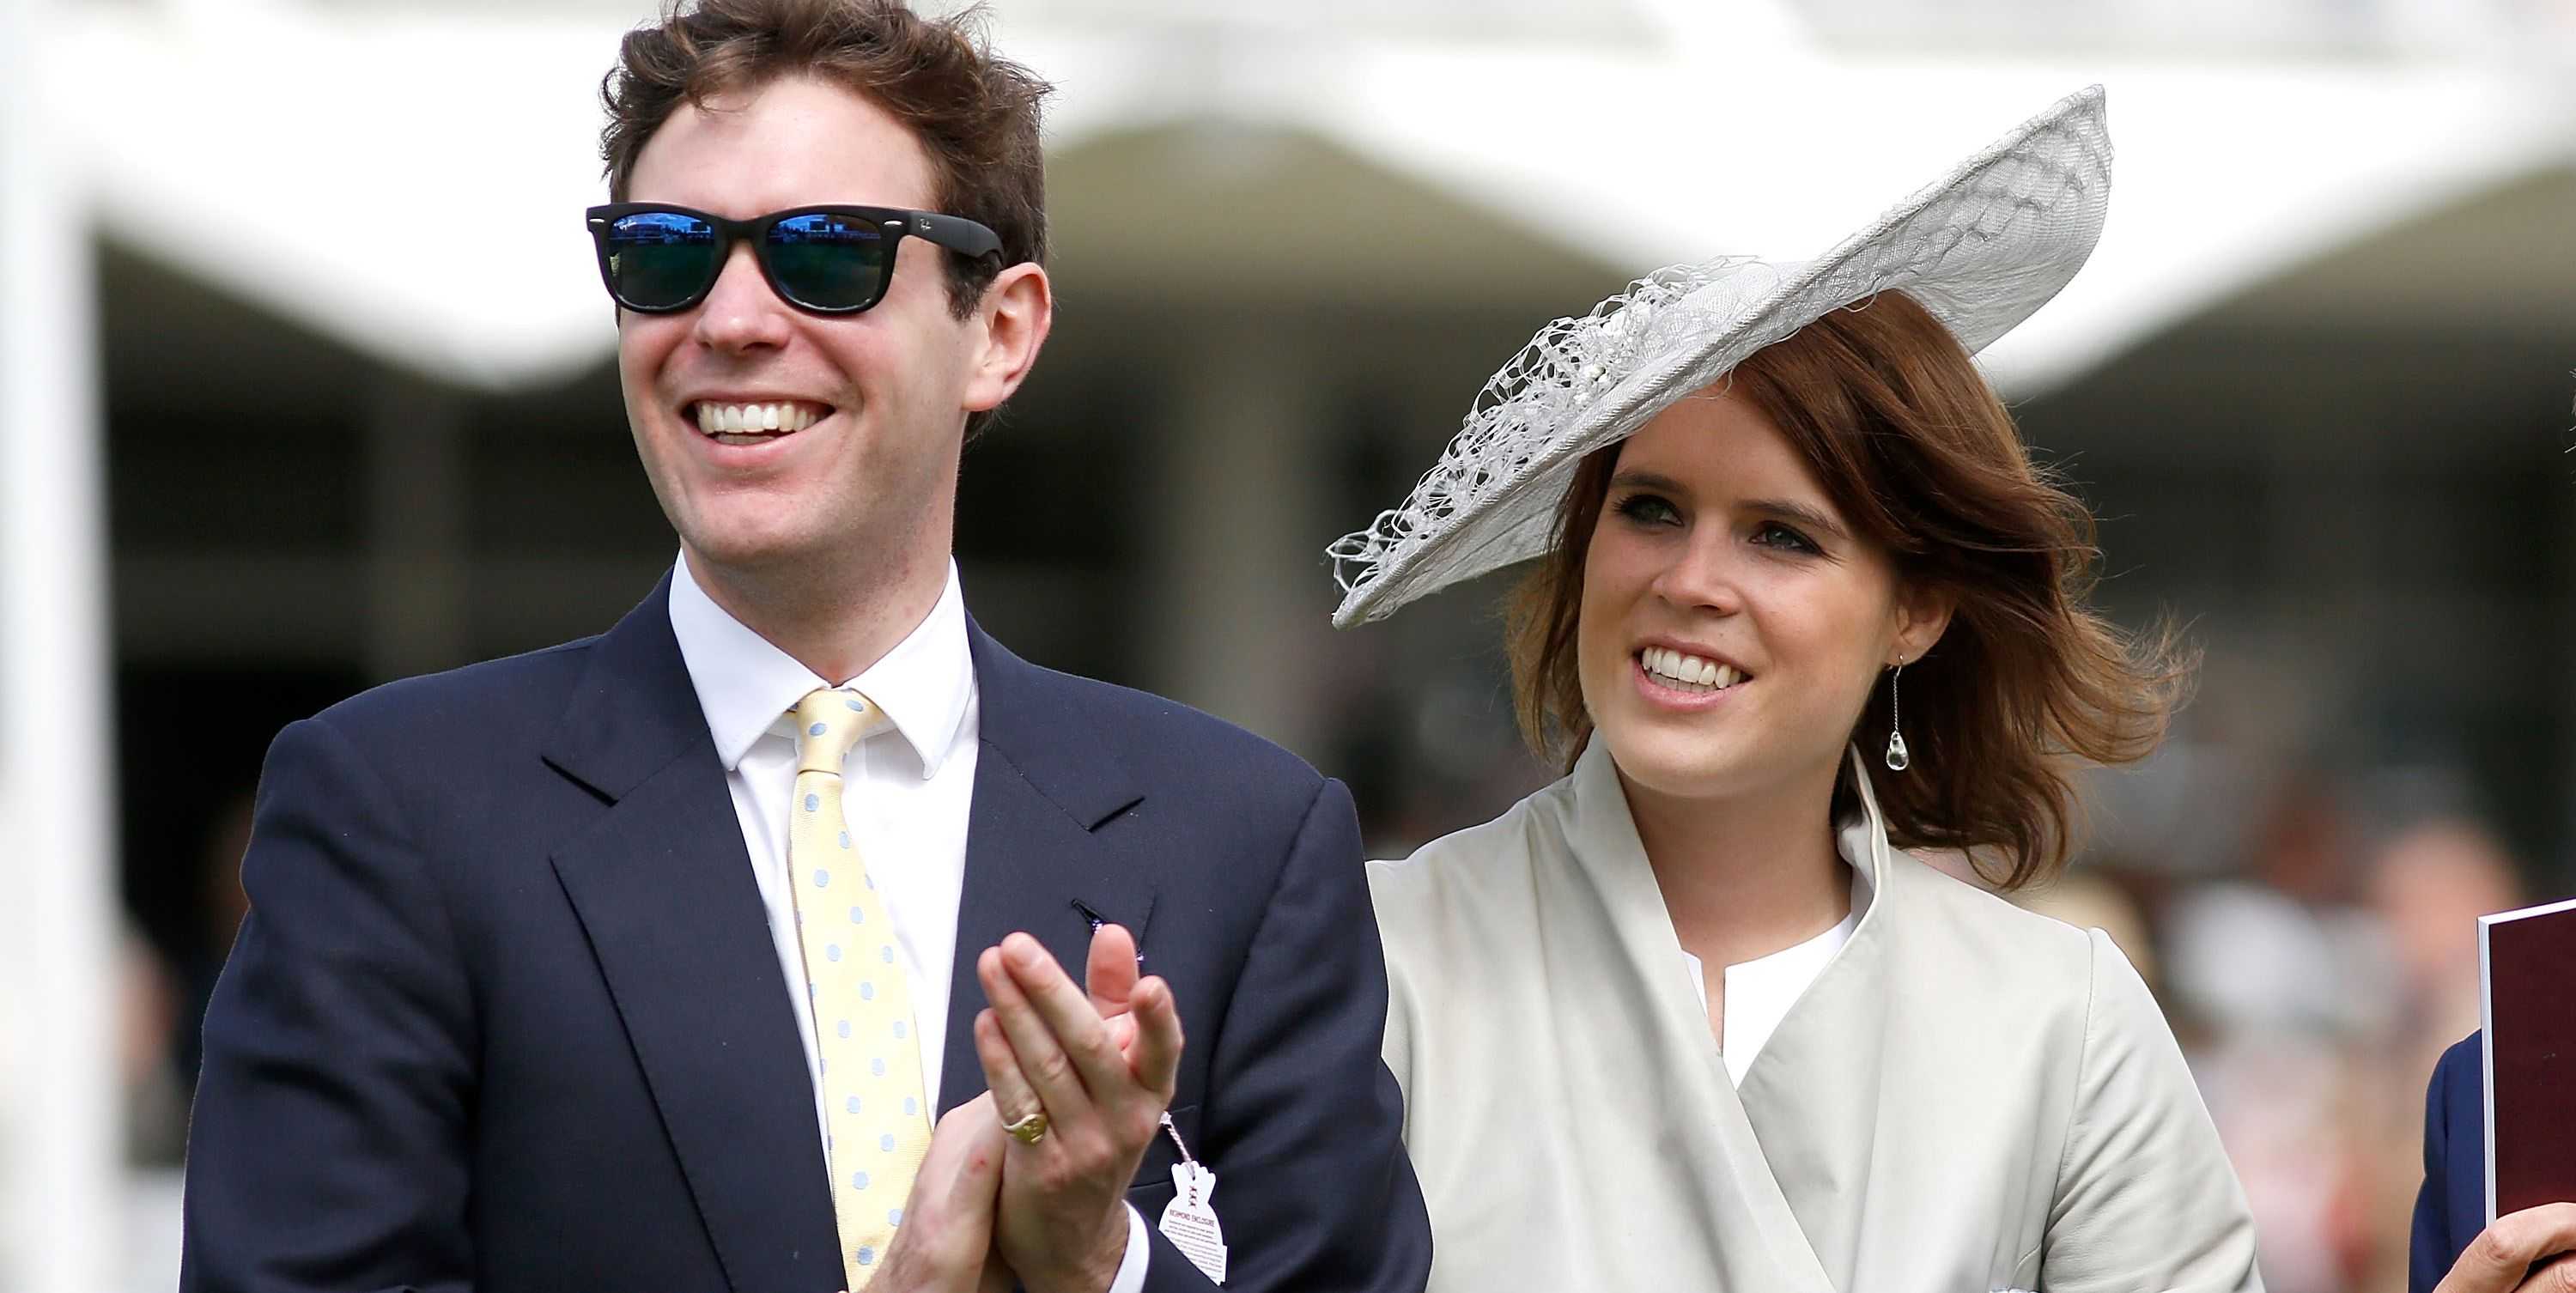 Princess Eugenie Has Set Some Very, Very Strict Rules for Her Royal Wedding